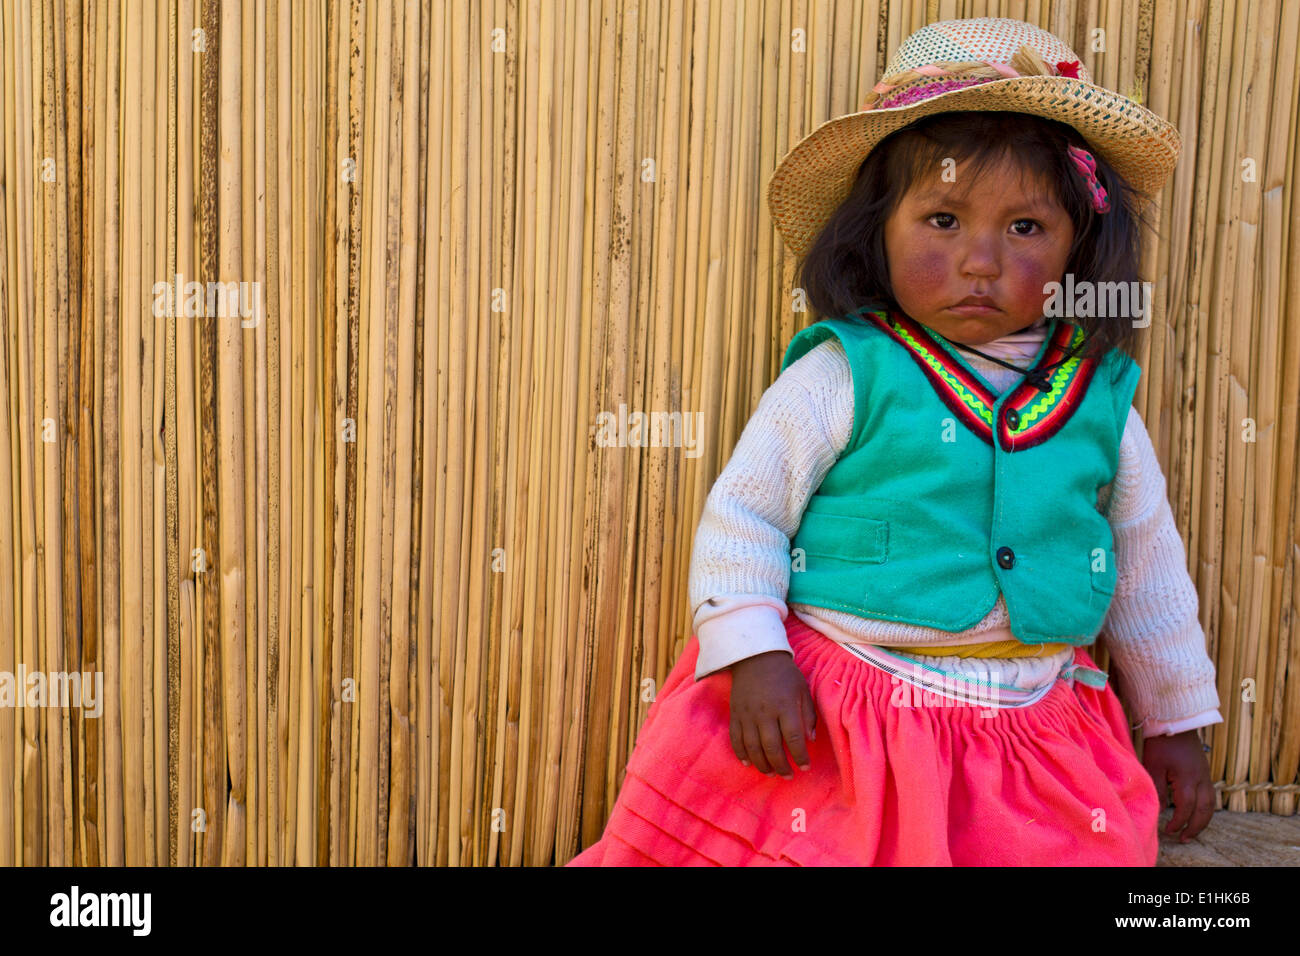 Young girl of the Uro Indians, about 6 years old, wearing traditional dress in front of a reed hut, floating islands made of - Stock Image